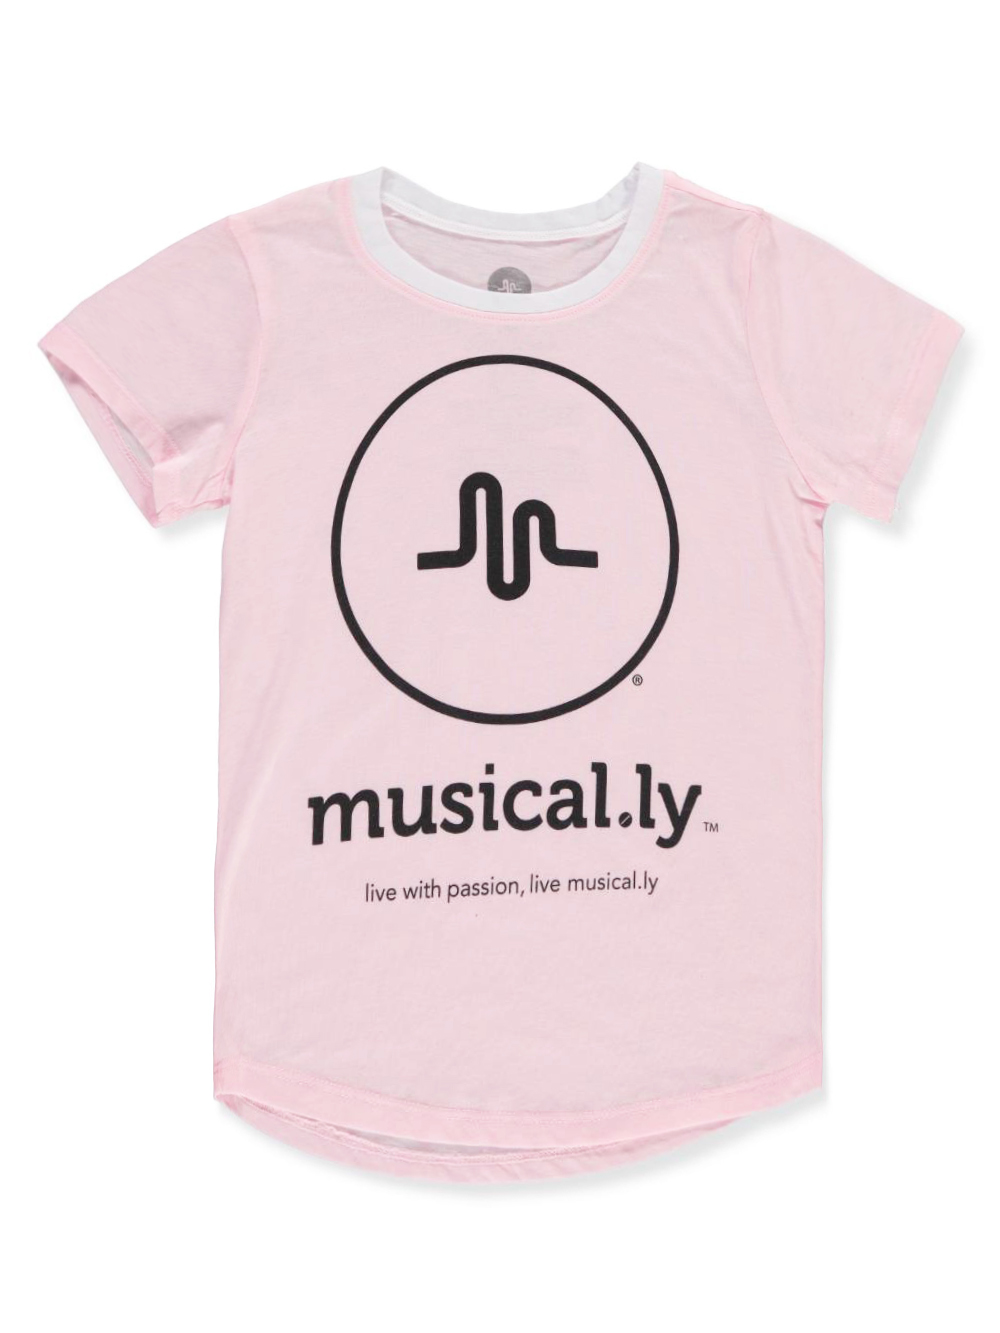 Size 4-5 T-Shirts for Girls